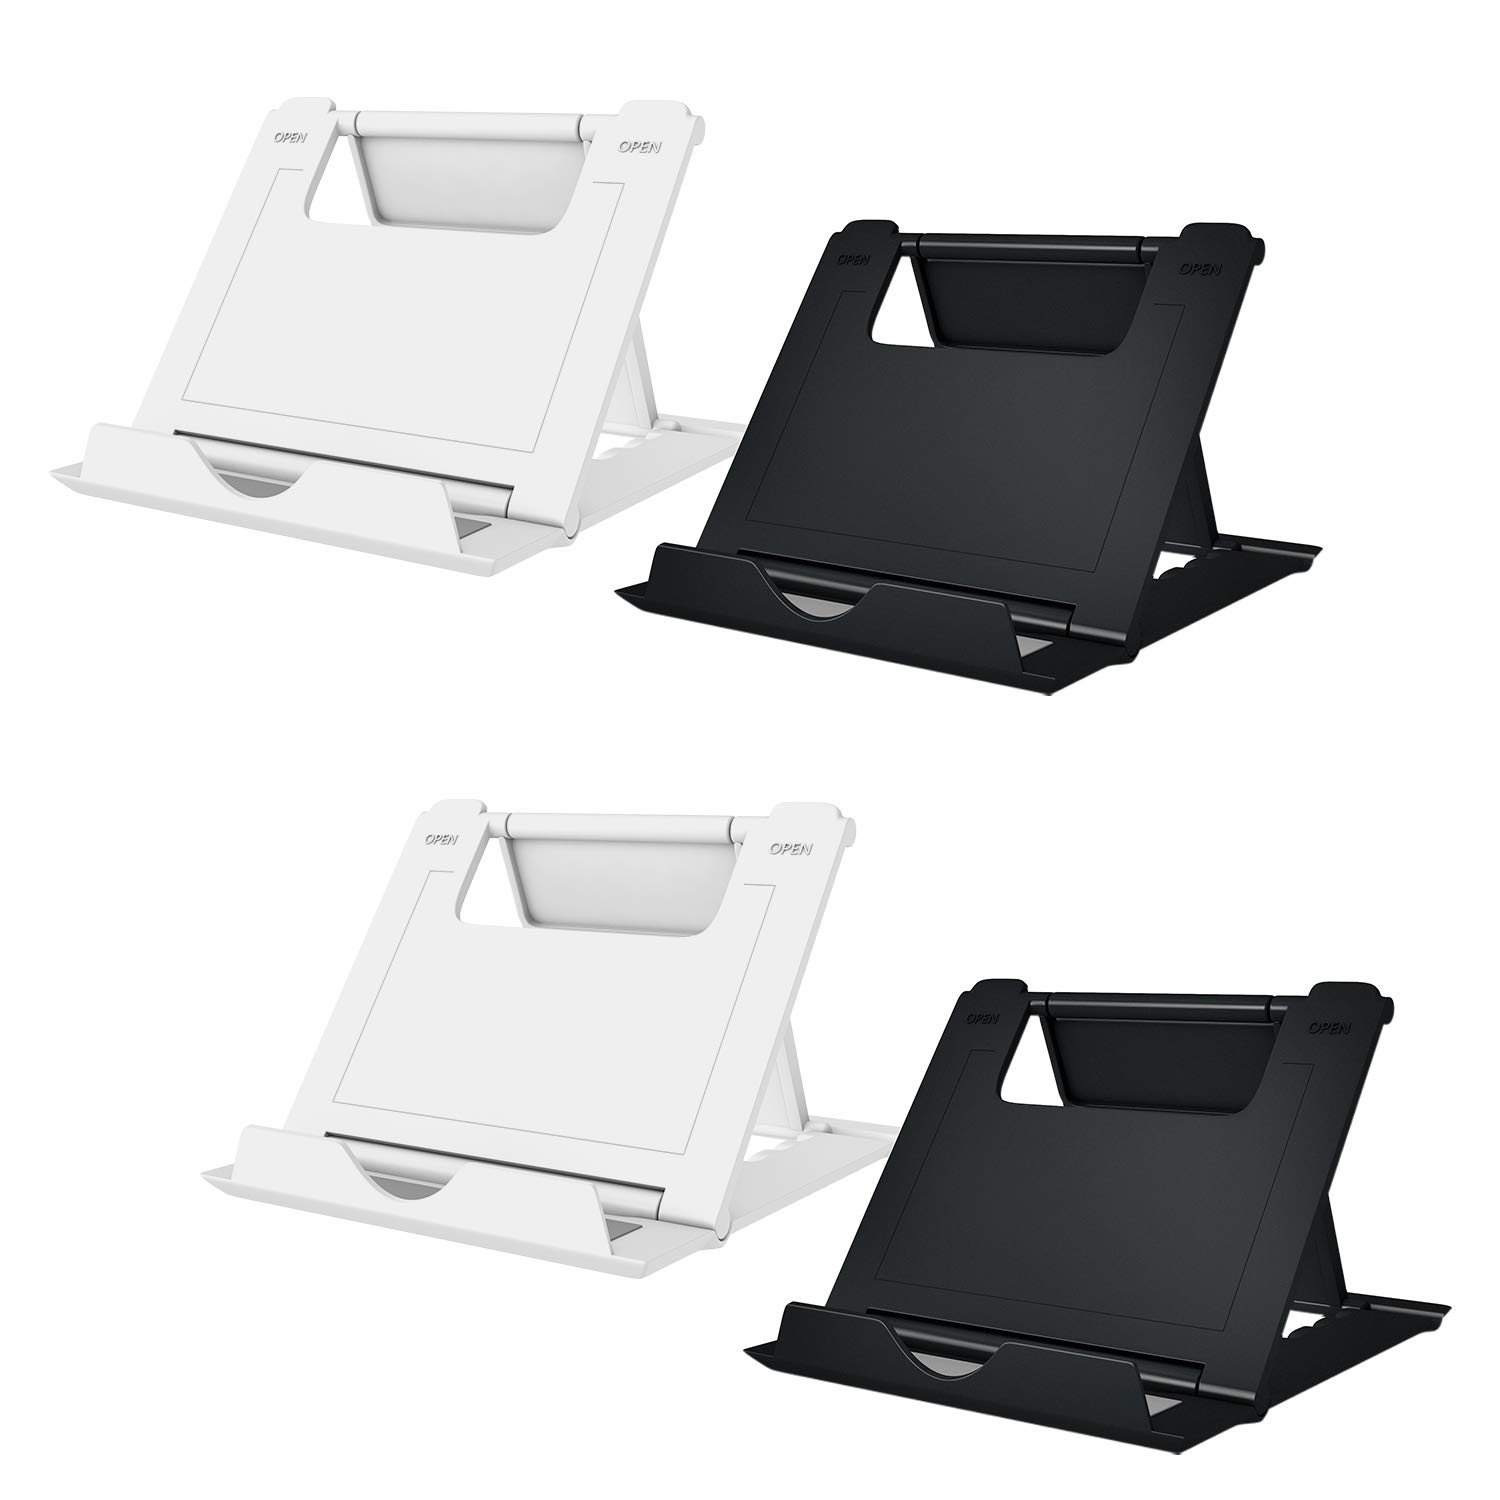 """Elimoons Phone Stand, 4 Pack Cell Phone Stand, Universal Foldable Tablet Stand Multi-angle Pocket Desktop Holder Cradle Compatible Phone XR XS Max X/8/7 Plus/7/6s/6/5/4 SE, Tablets(6-11""""), Black/White"""